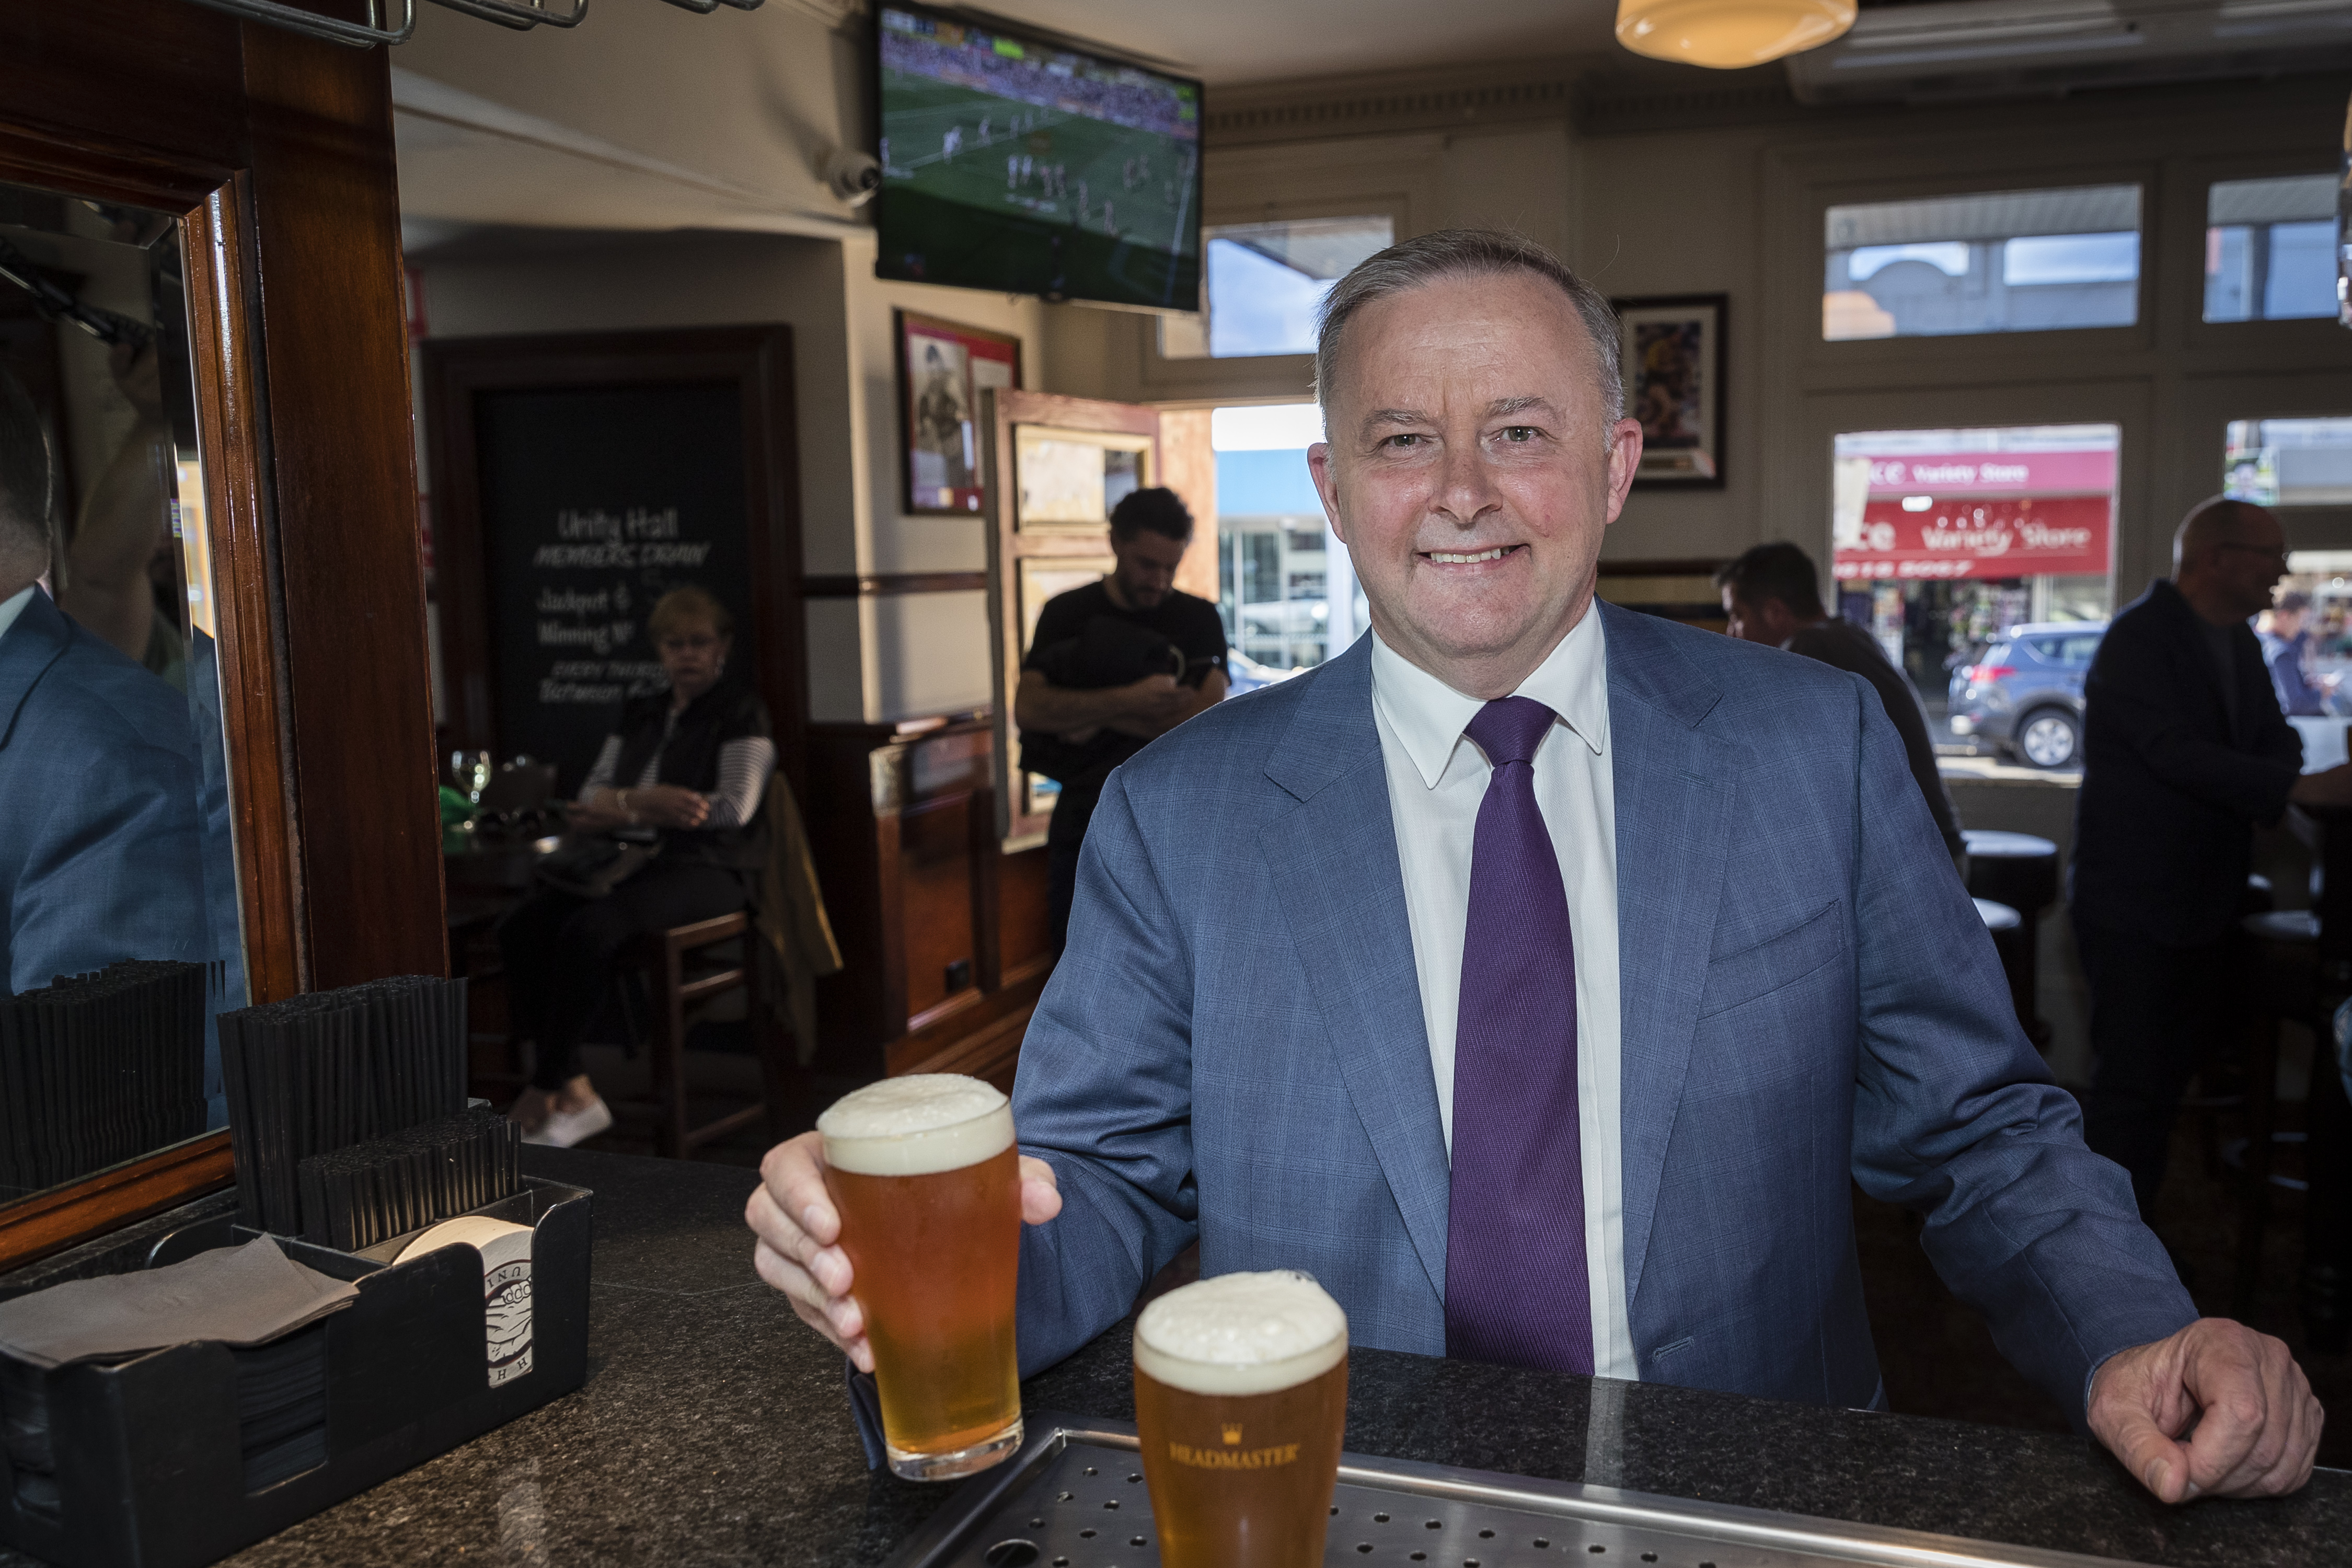 Anthony Albanese Announces He Will Run For Labor Leadership